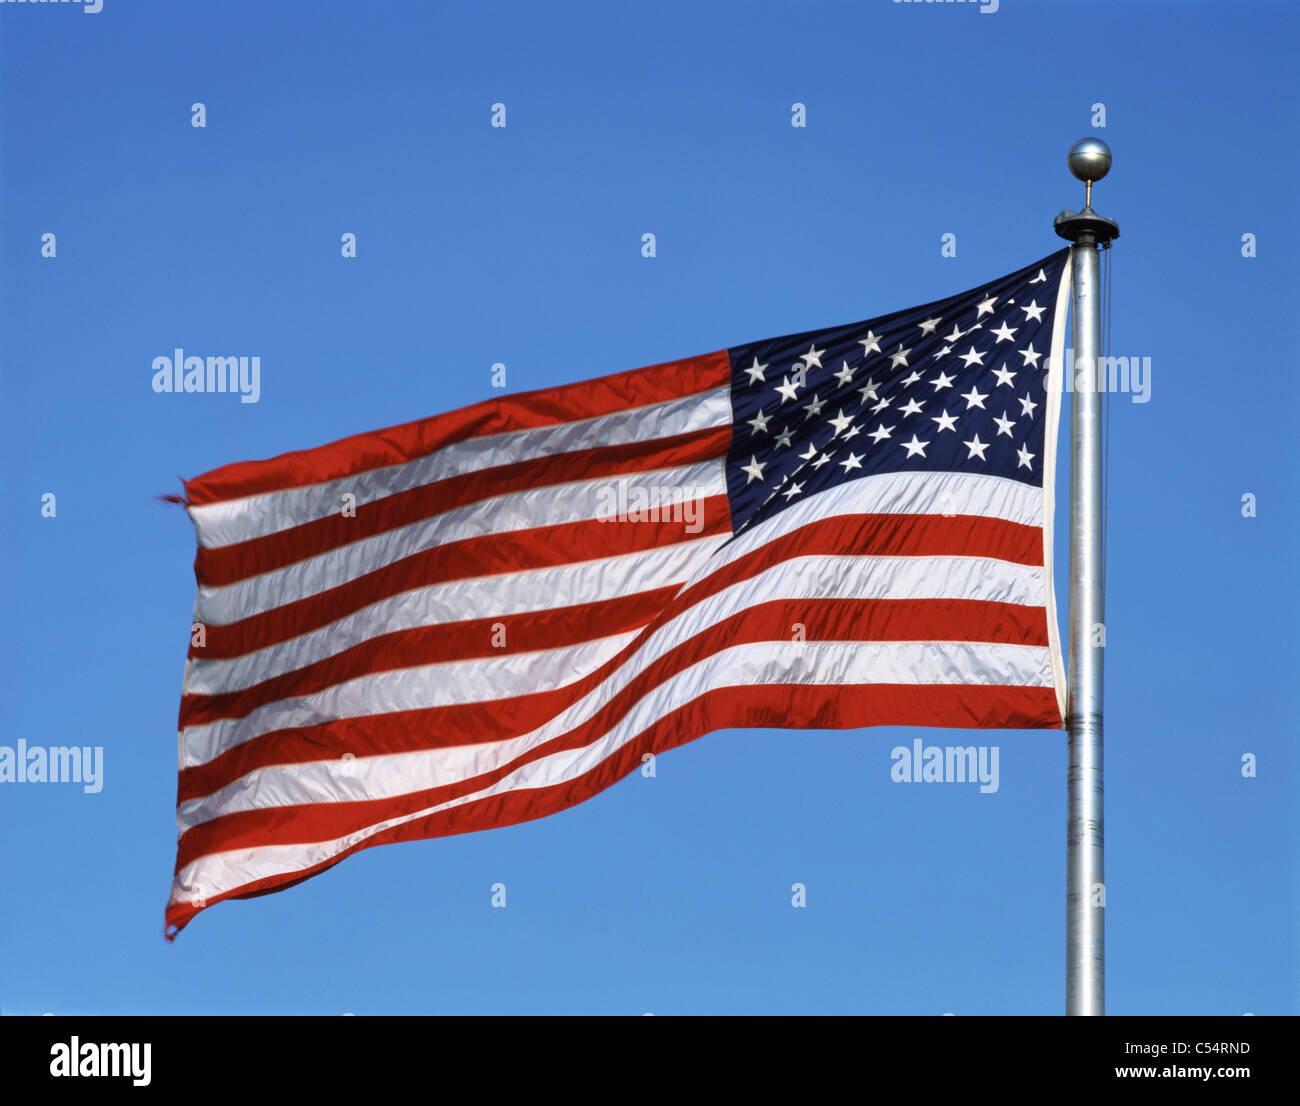 Close-up of American flag fluttering against blue sky Stock Photo